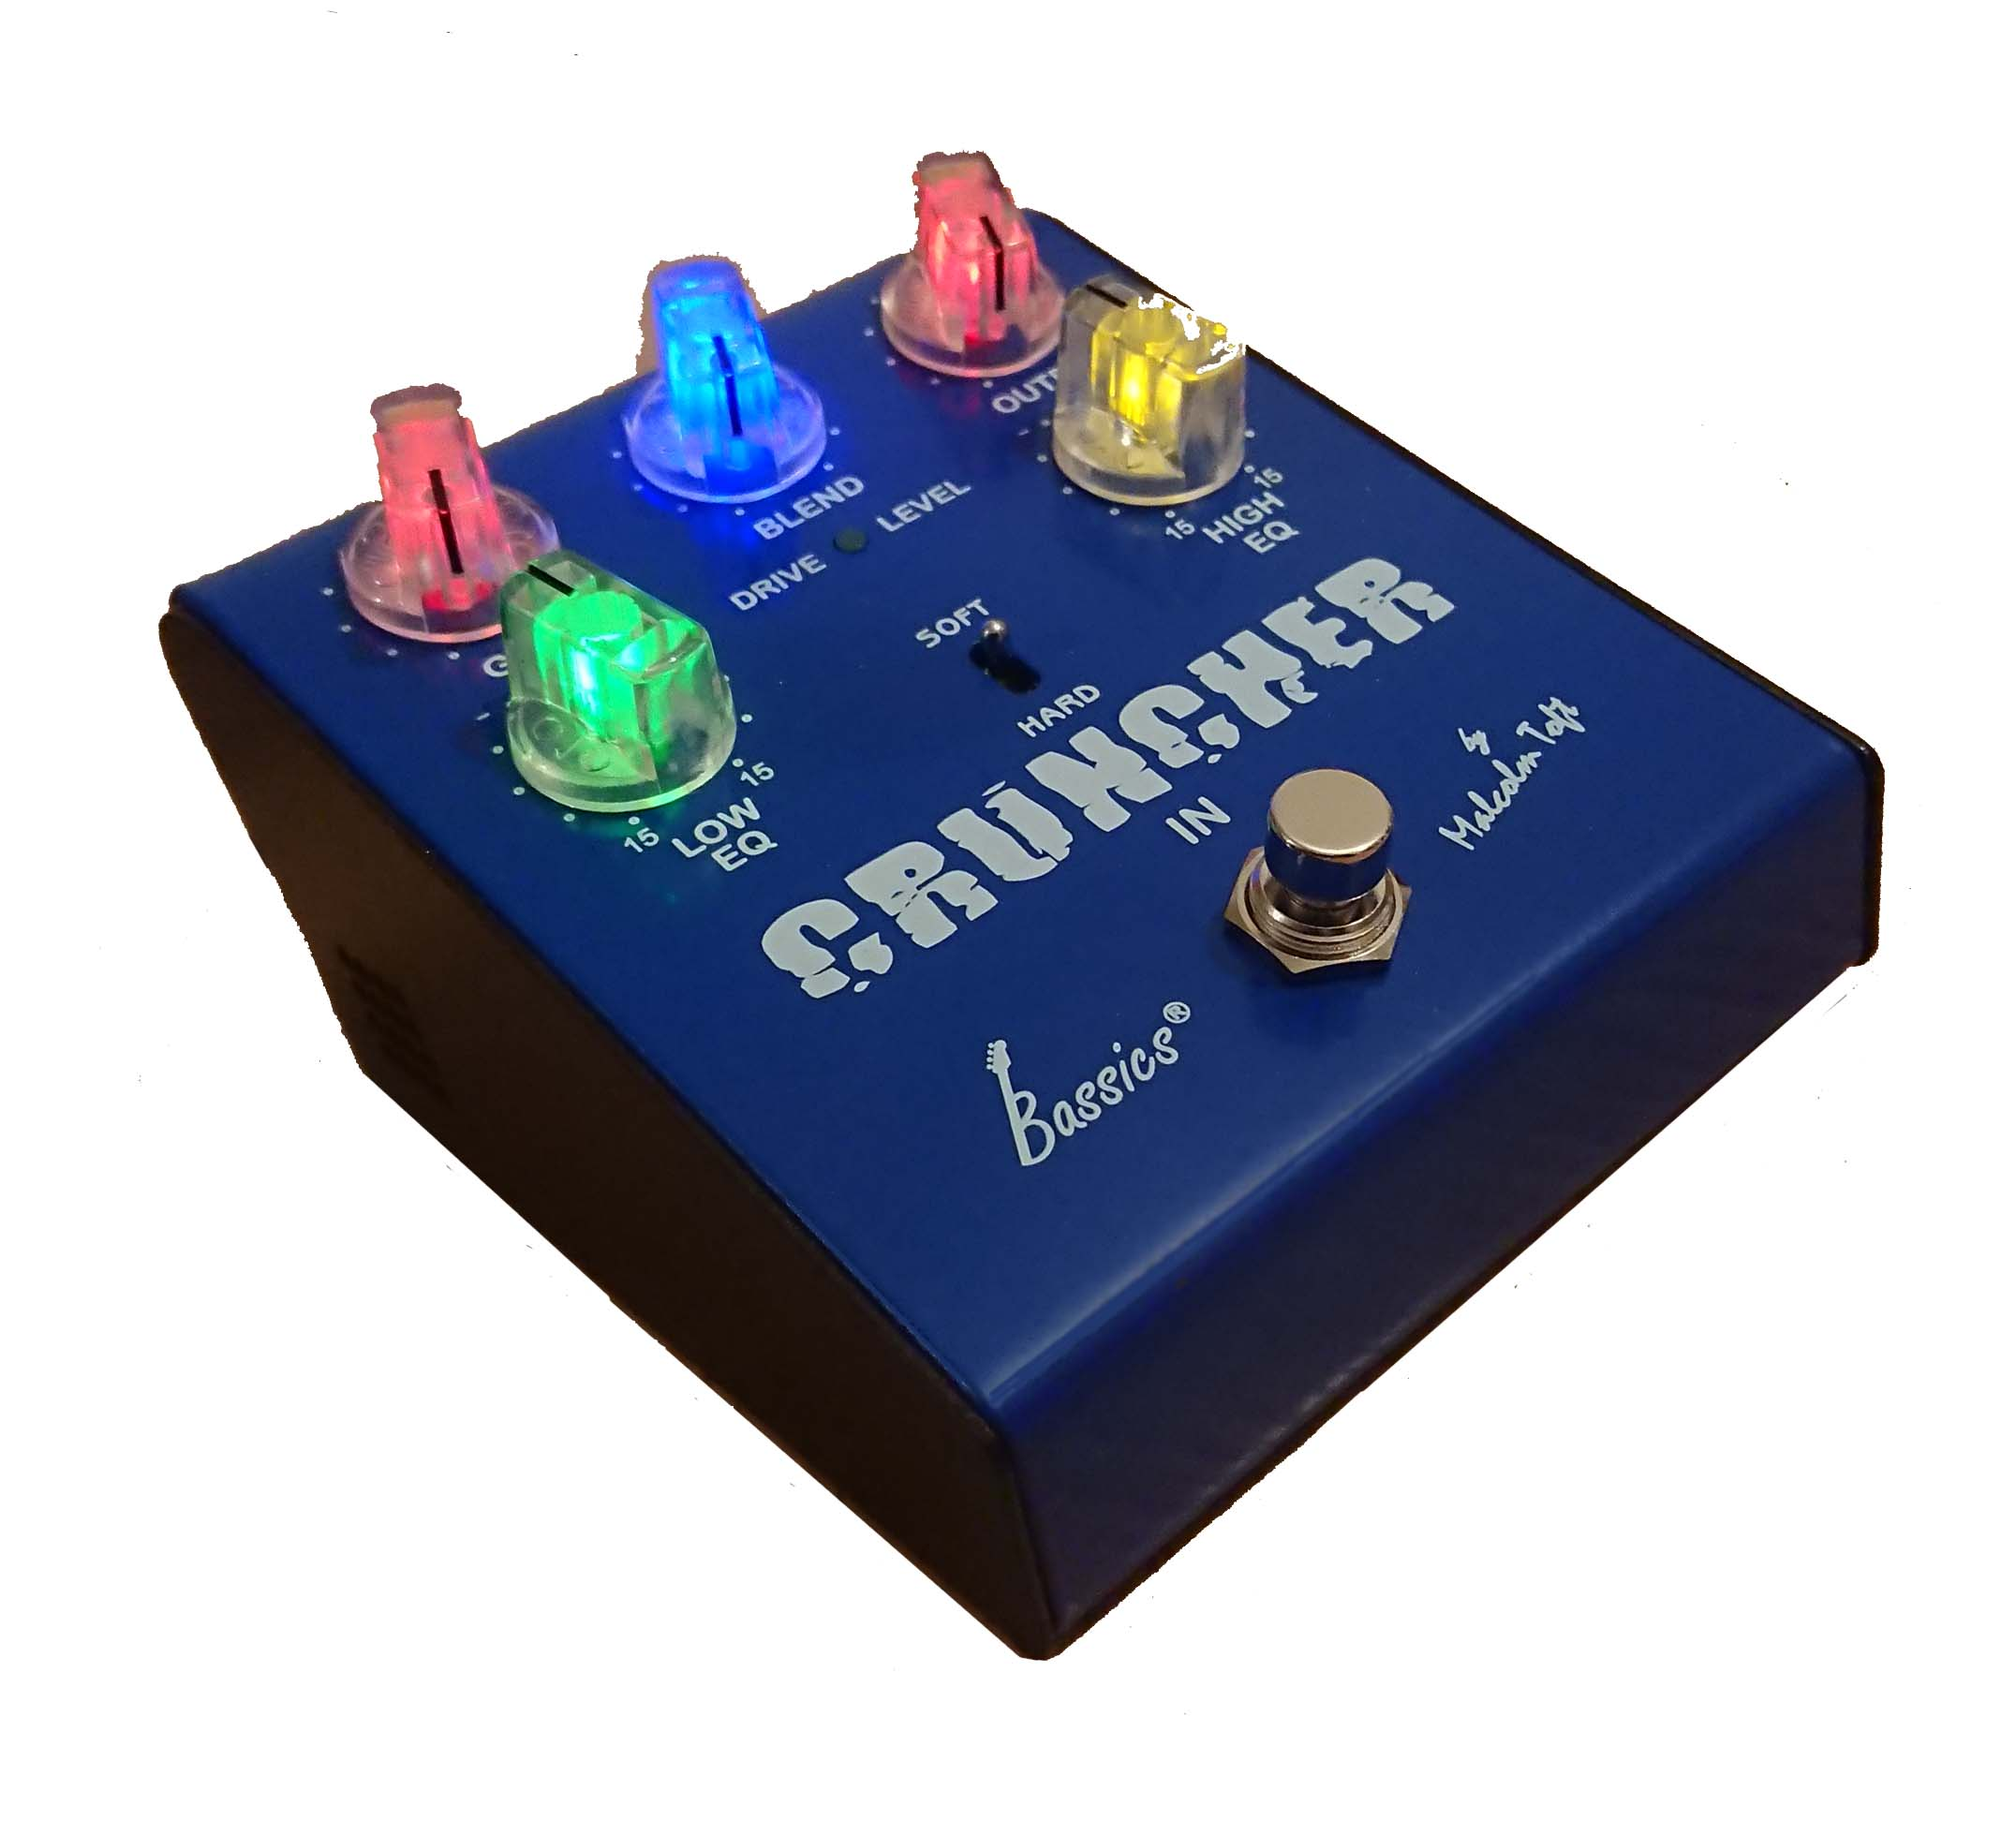 Bassics Cruncher Distortion Pedal